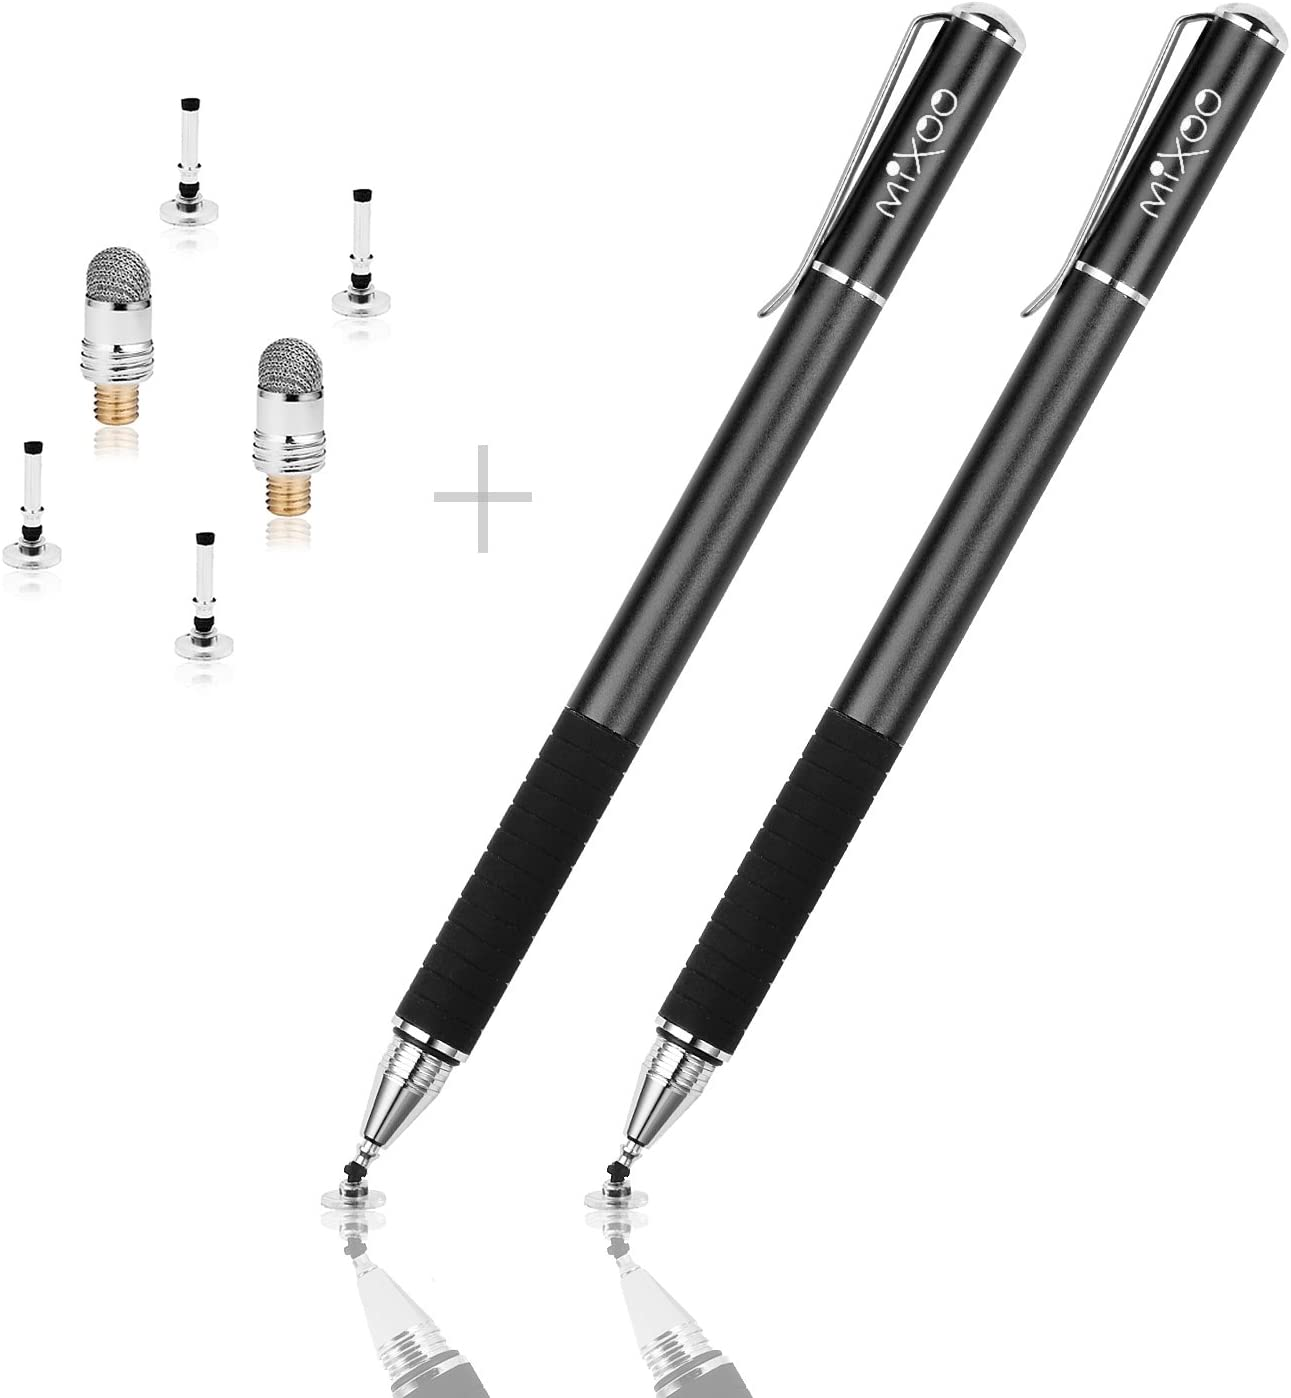 Mixoo 2-in-1 Precision Disc & Fiber Stylus with Replaceable Tips for Capacitive Touch Screen Devices (Black/Black)